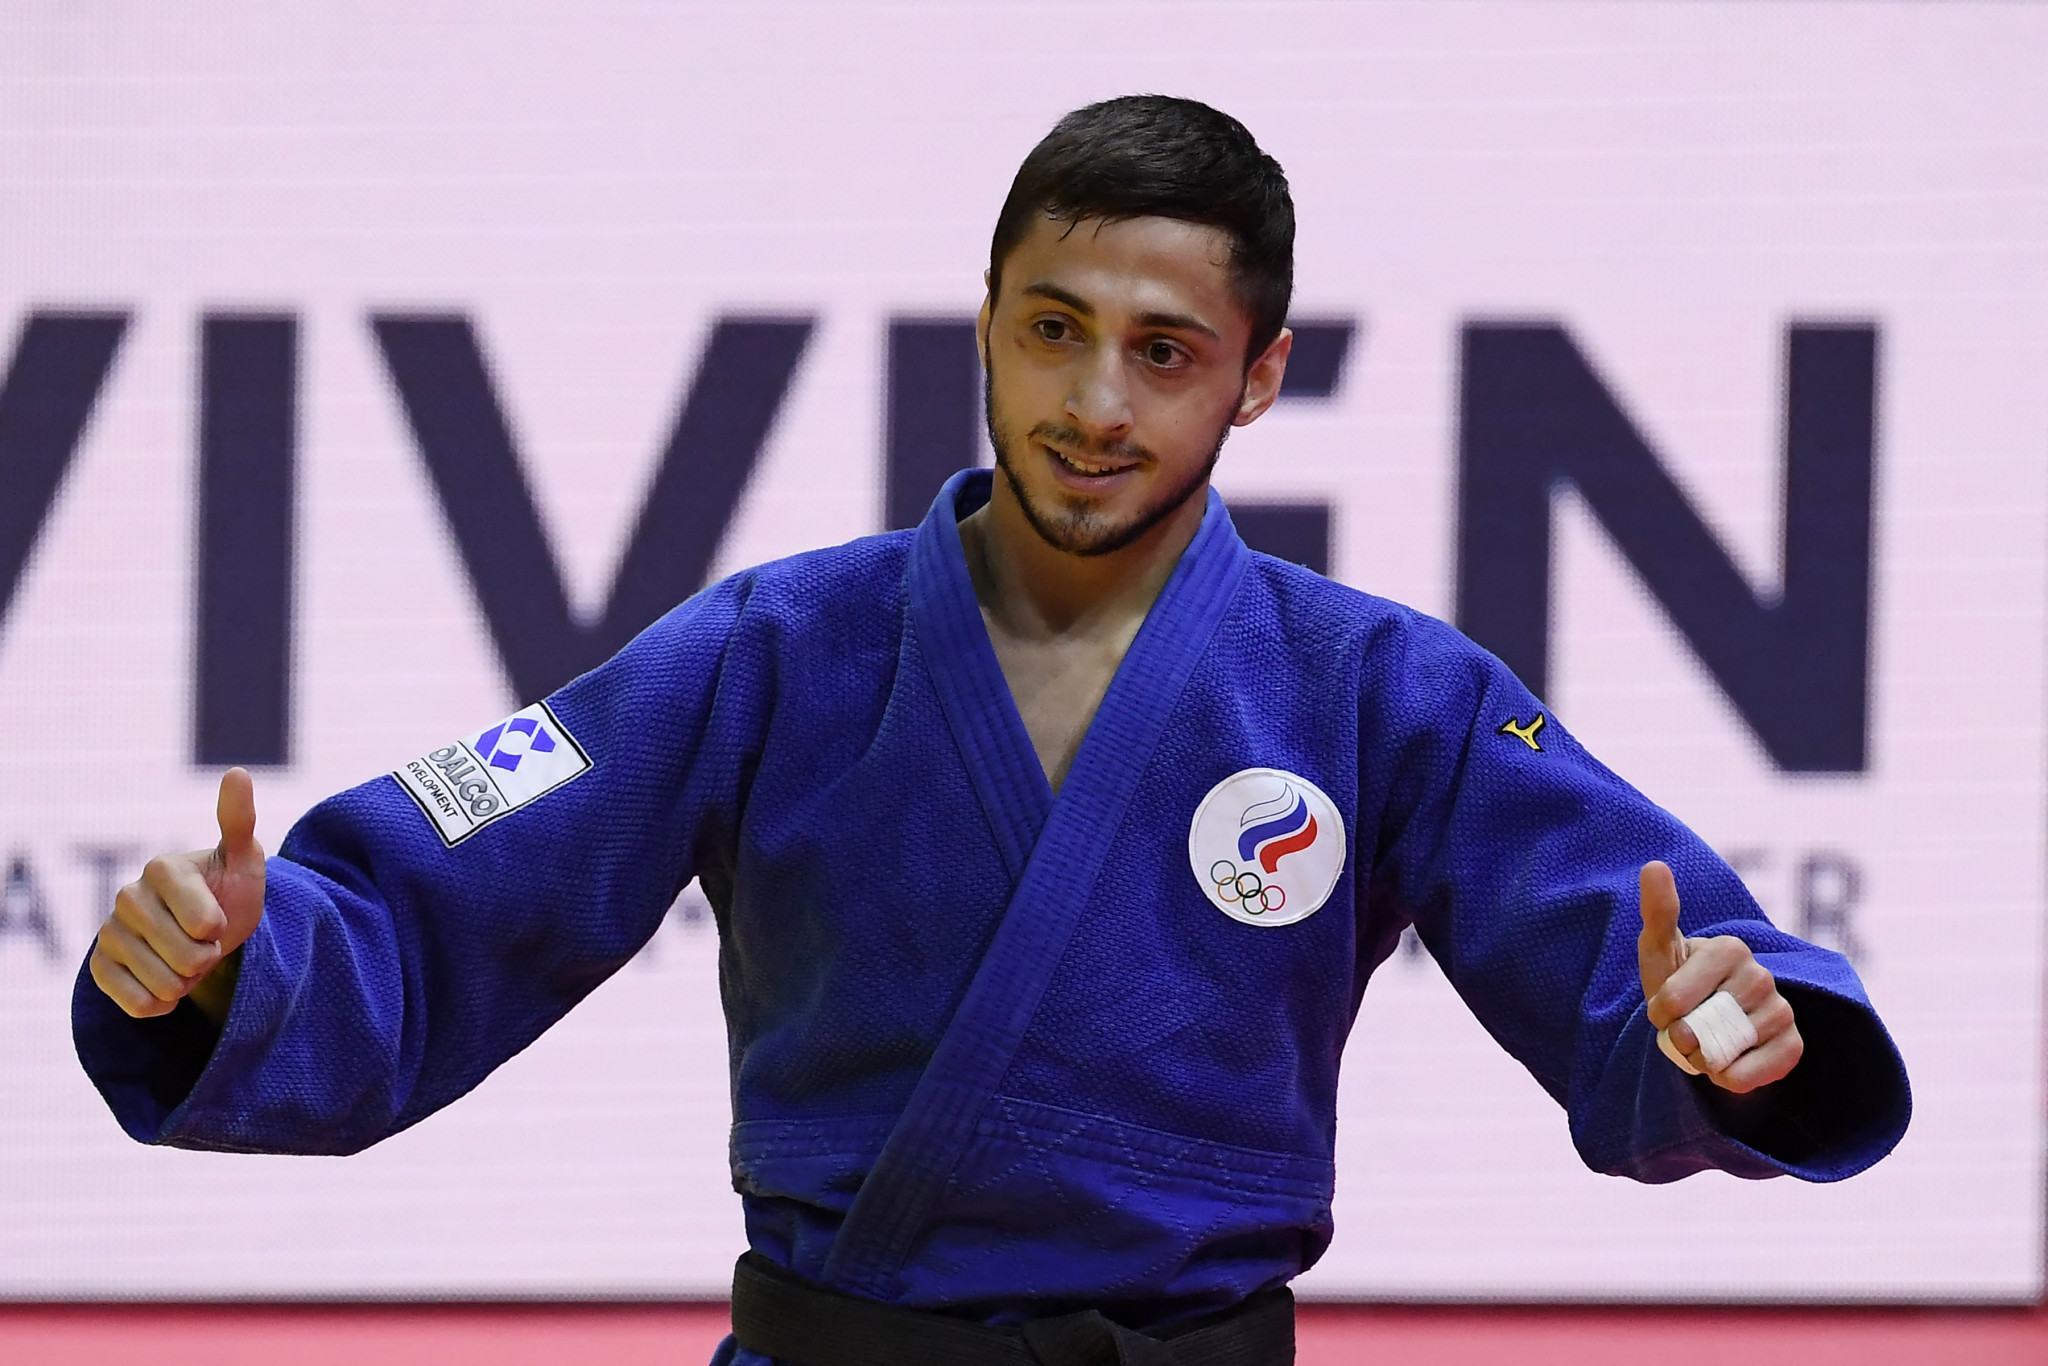 Yago Abuladze won gold at the World Judo Championships in Budapest and was presented with his medal by Yekaterinburg Governor Yevgeny Kuyvashev ©Getty Images